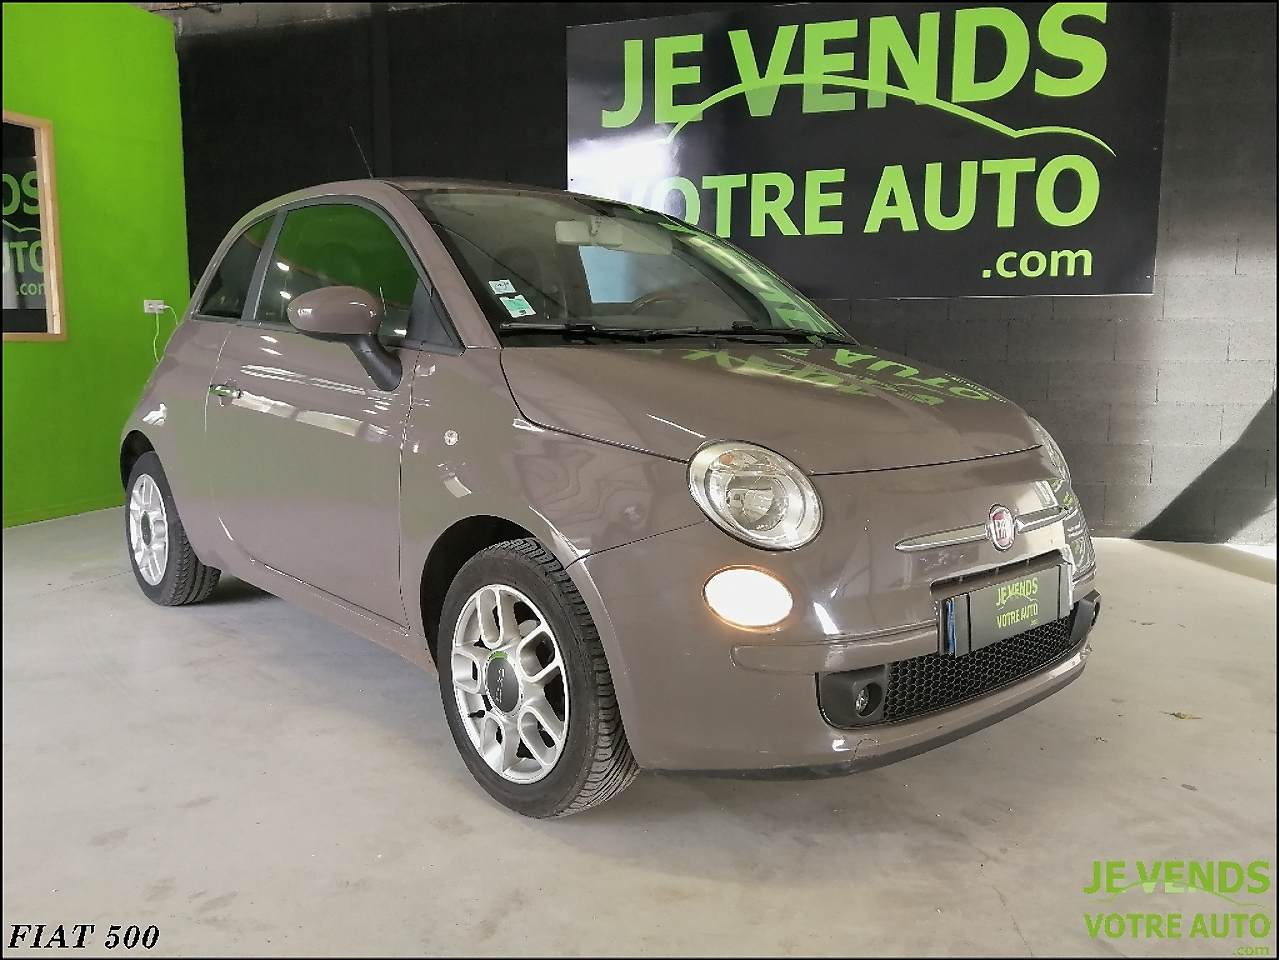 voiture fiat 500 1 2 8v 69ch sport 2008a occasion essence 2008 71600 km 5900. Black Bedroom Furniture Sets. Home Design Ideas